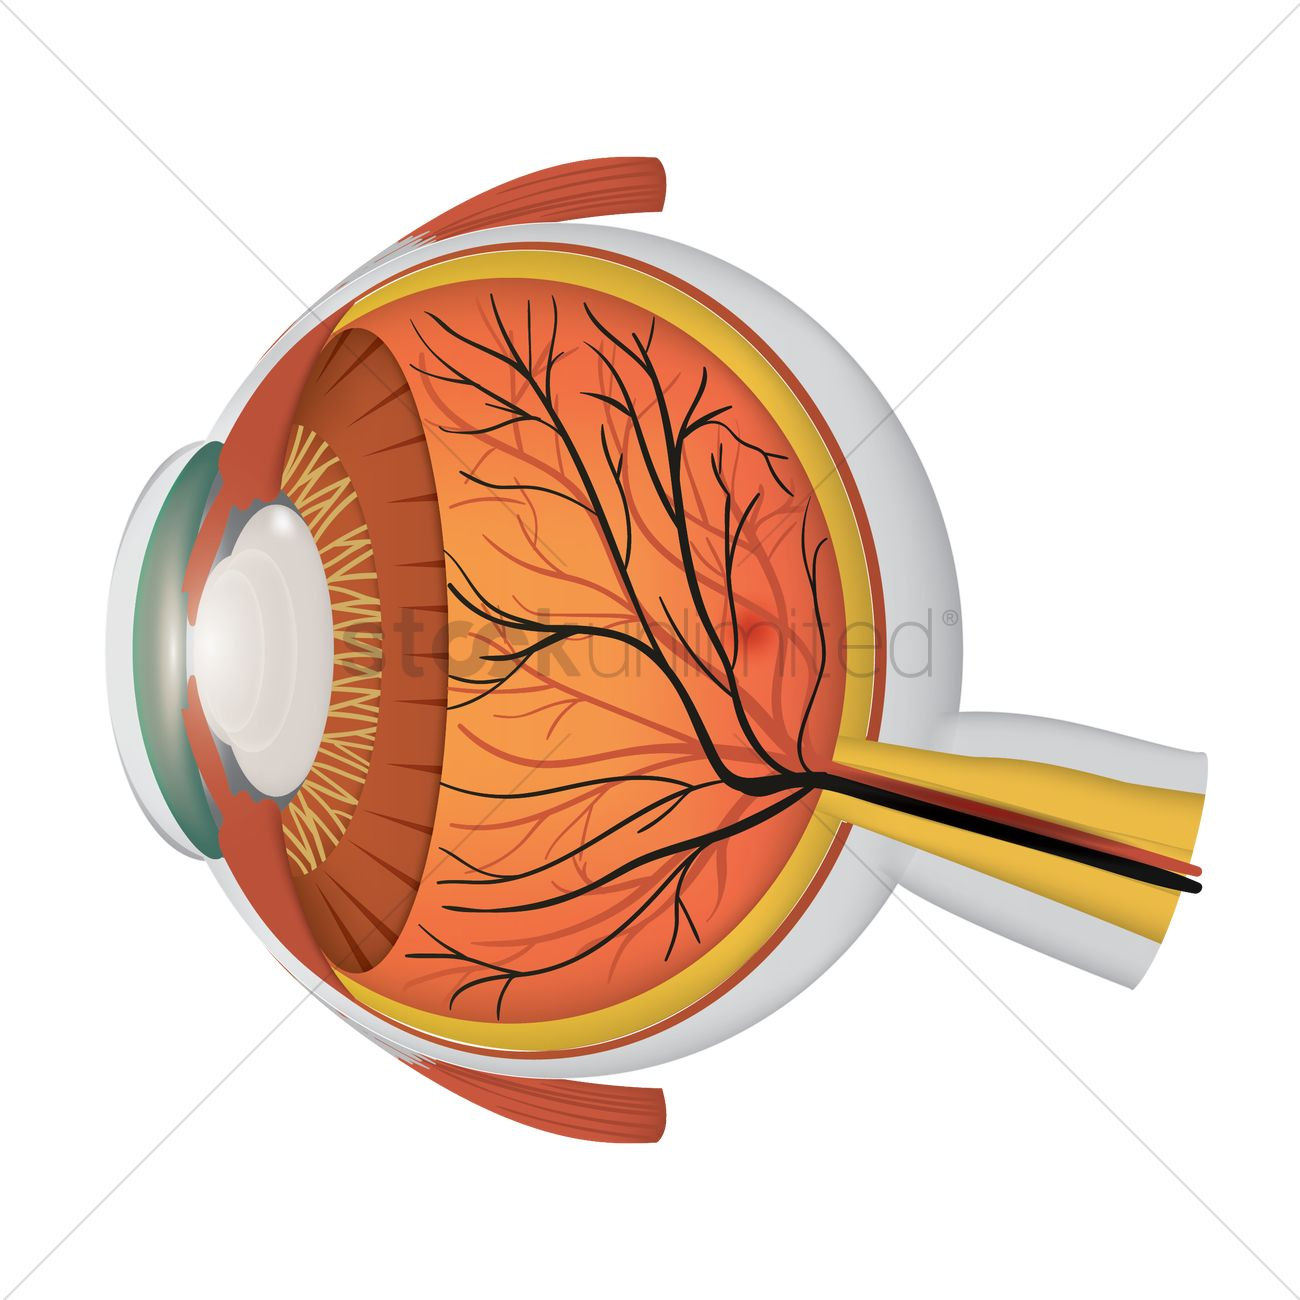 Anatomy of an eyeball Vector Image - 1863551 | StockUnlimited